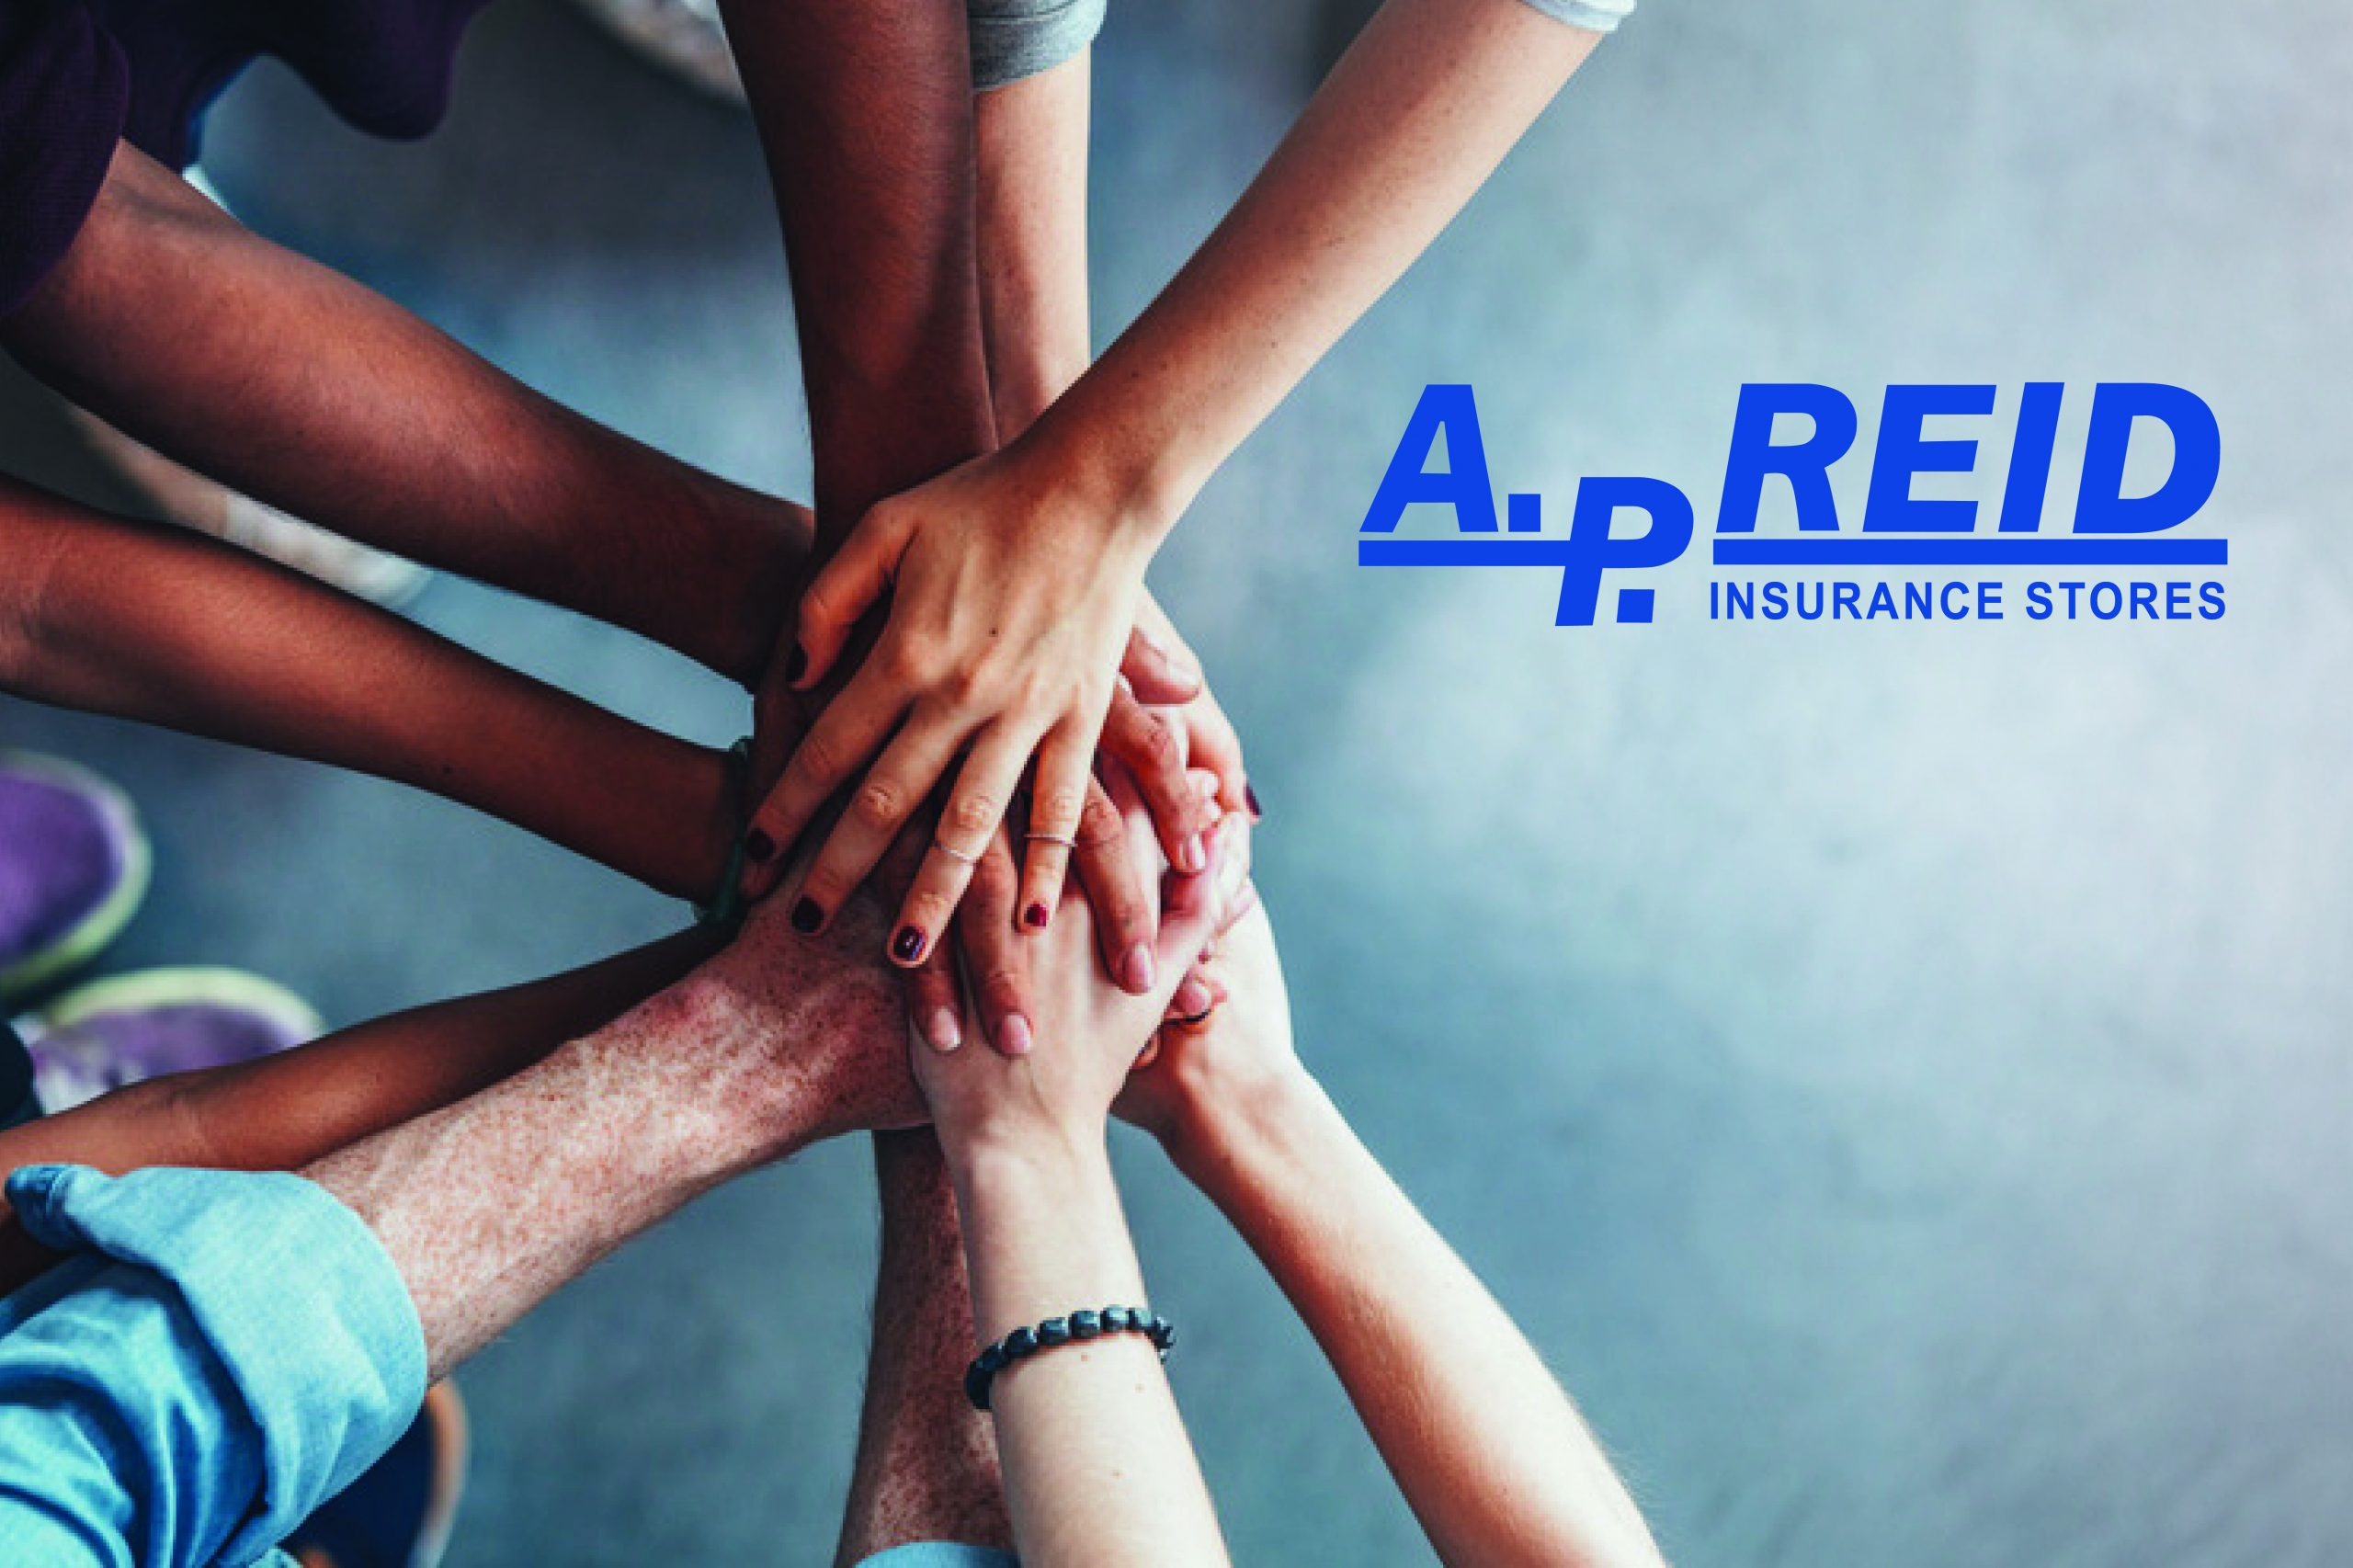 A.P. Reid Insurance to acquire Sheppard Insurance Service and Risk Management Ltd.